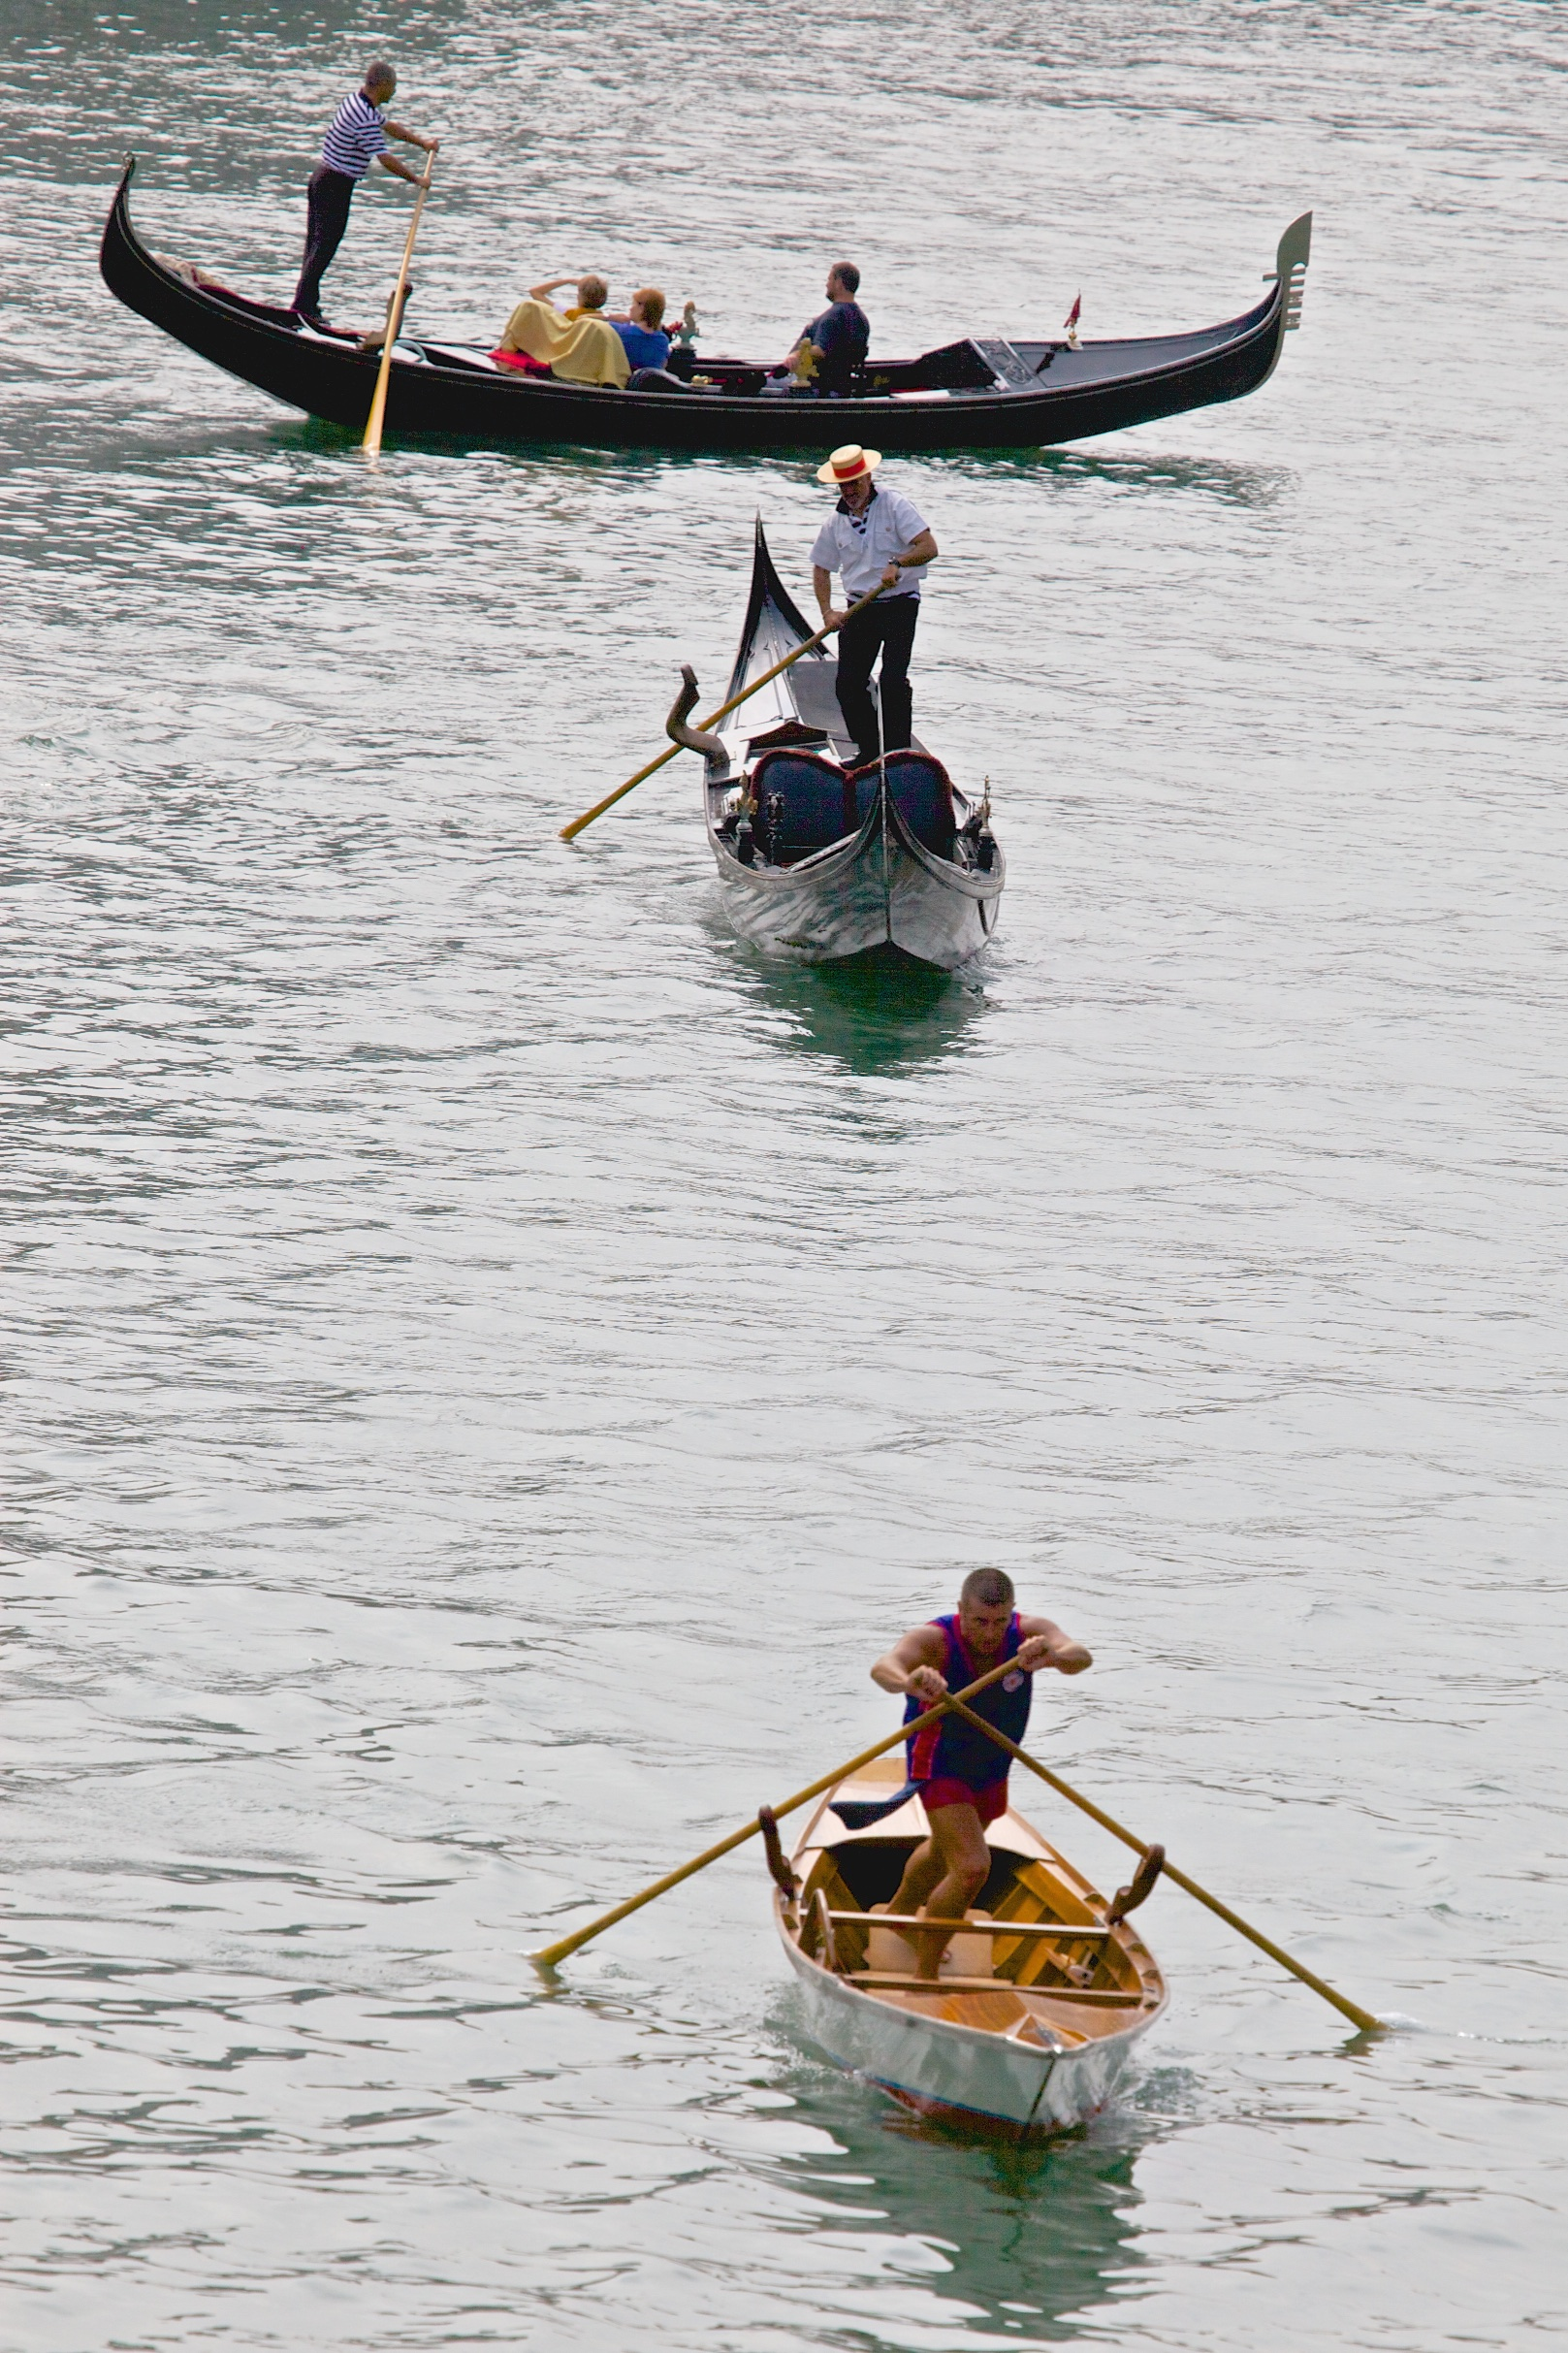 Different rowing techniques crossing the Canale Grande in Venice.